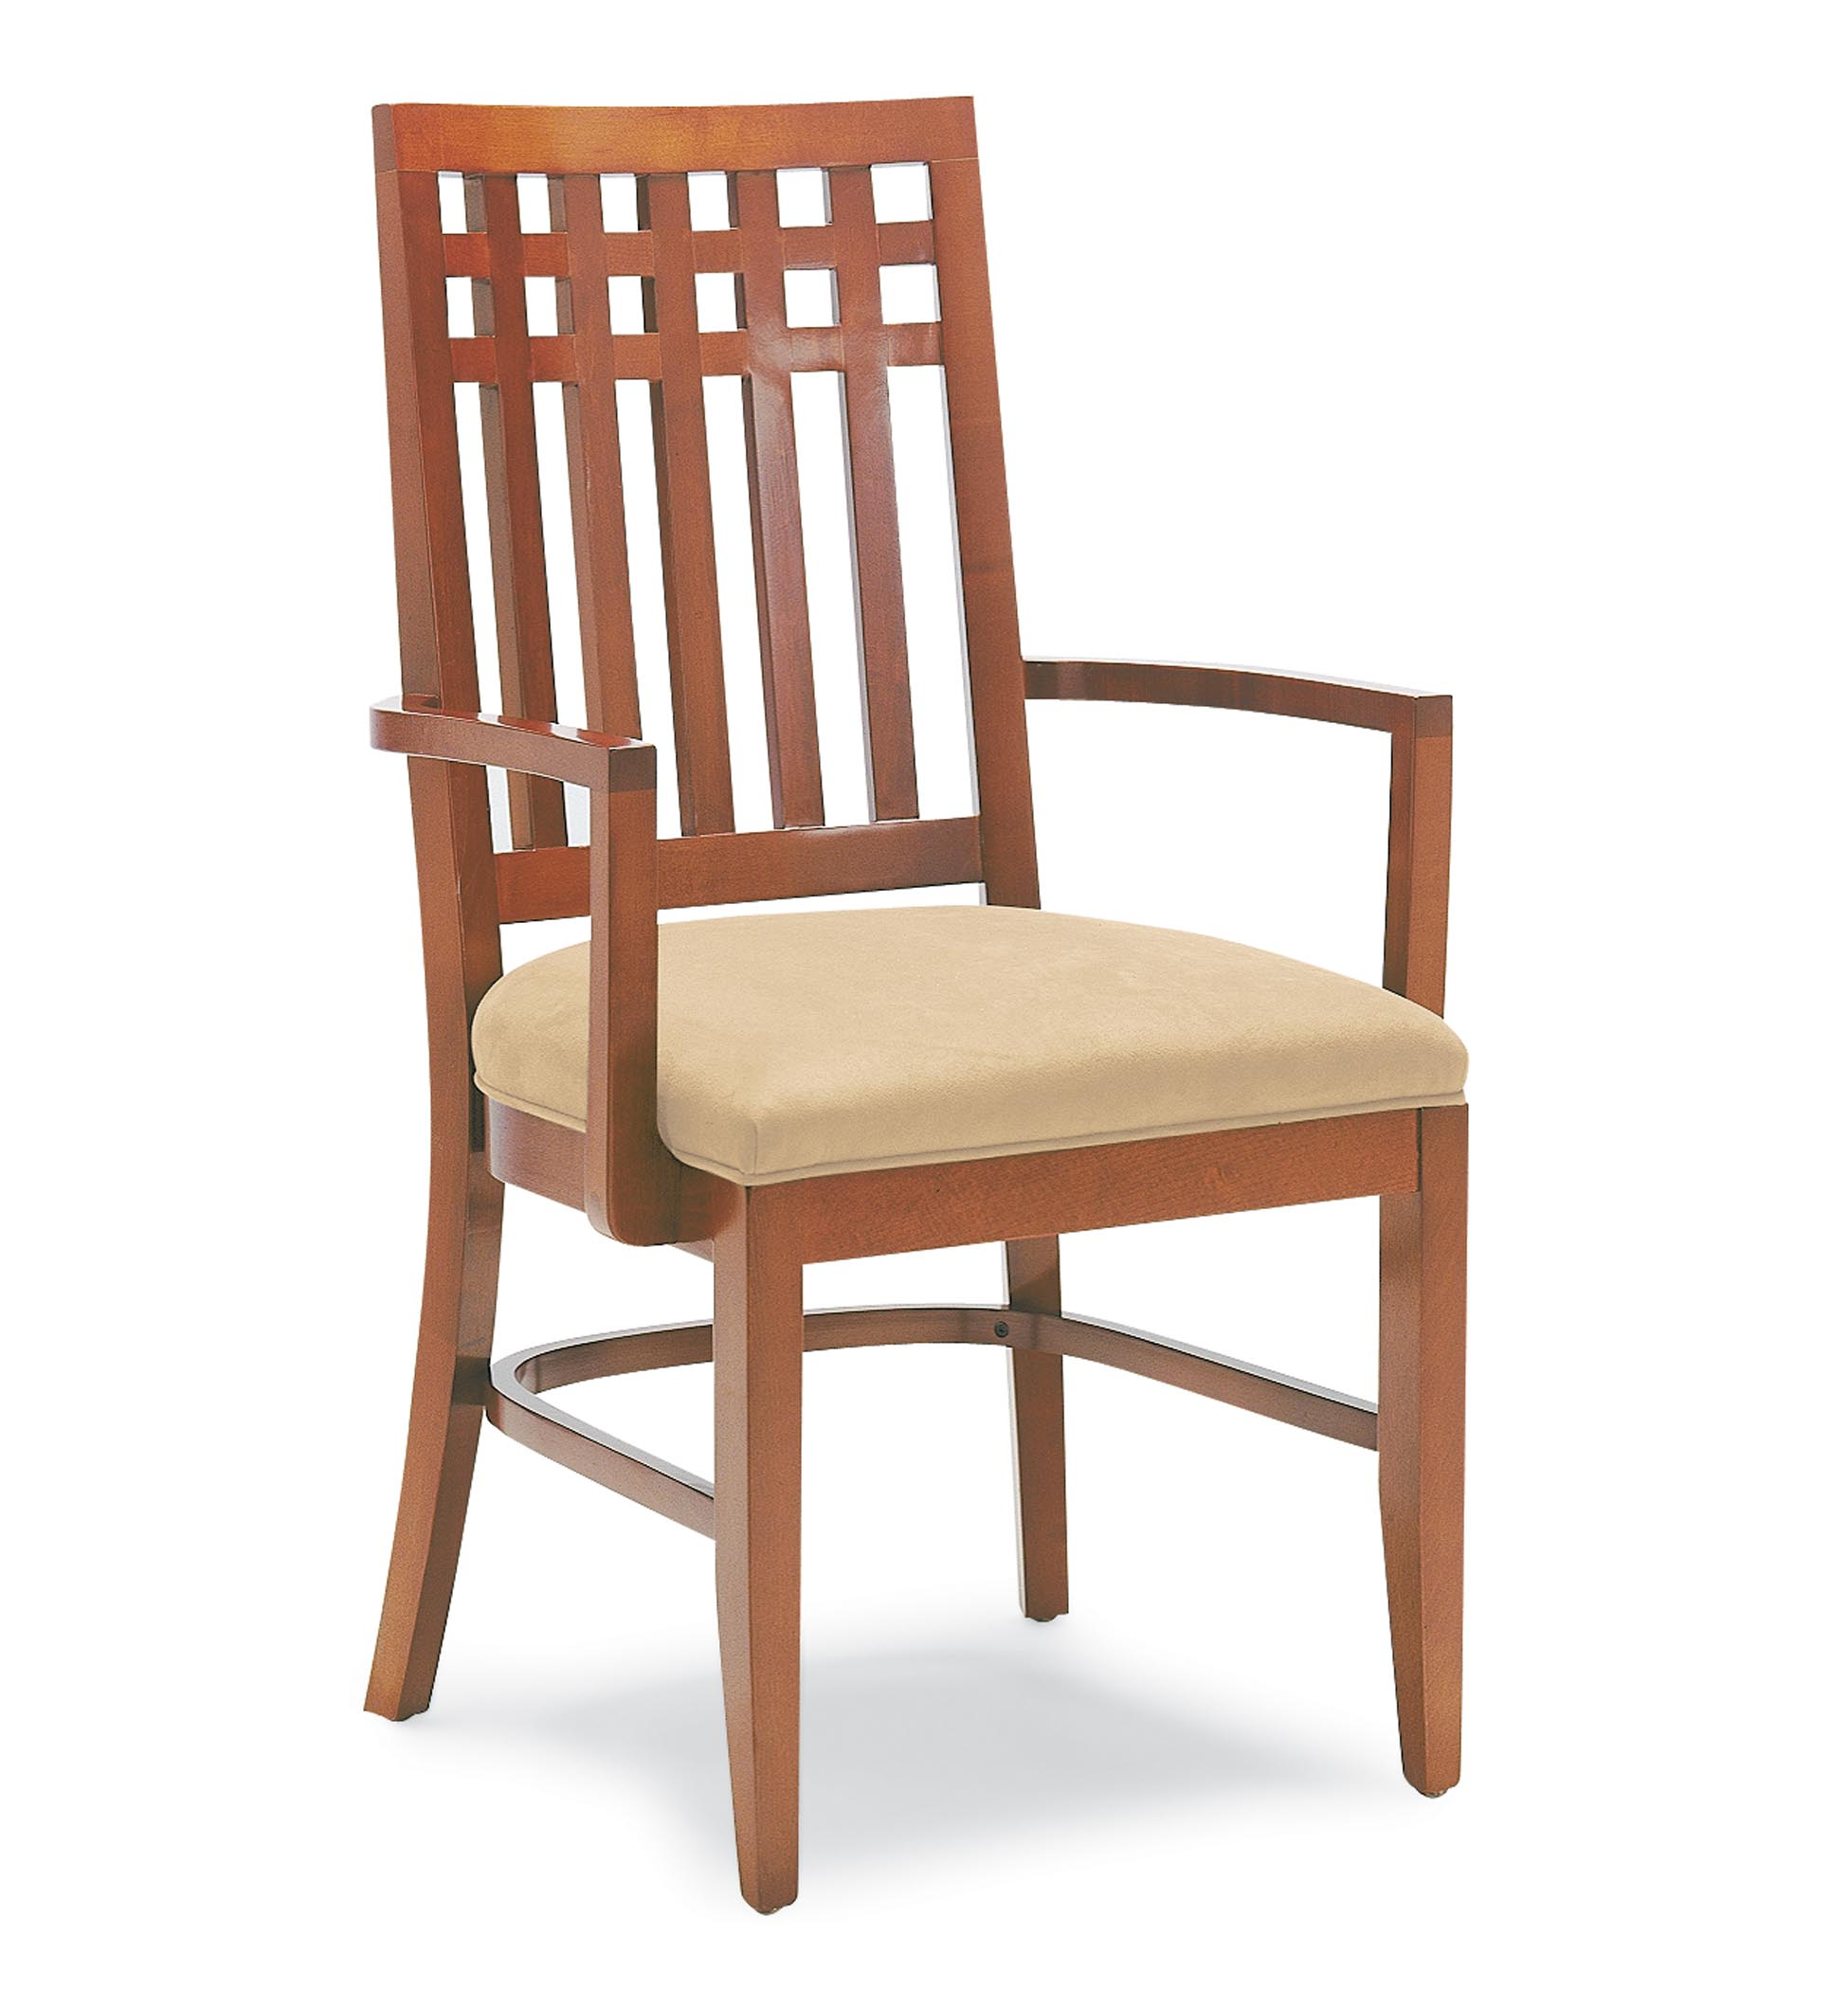 Wooden Arm Chair 3455 Wood Arm Chair